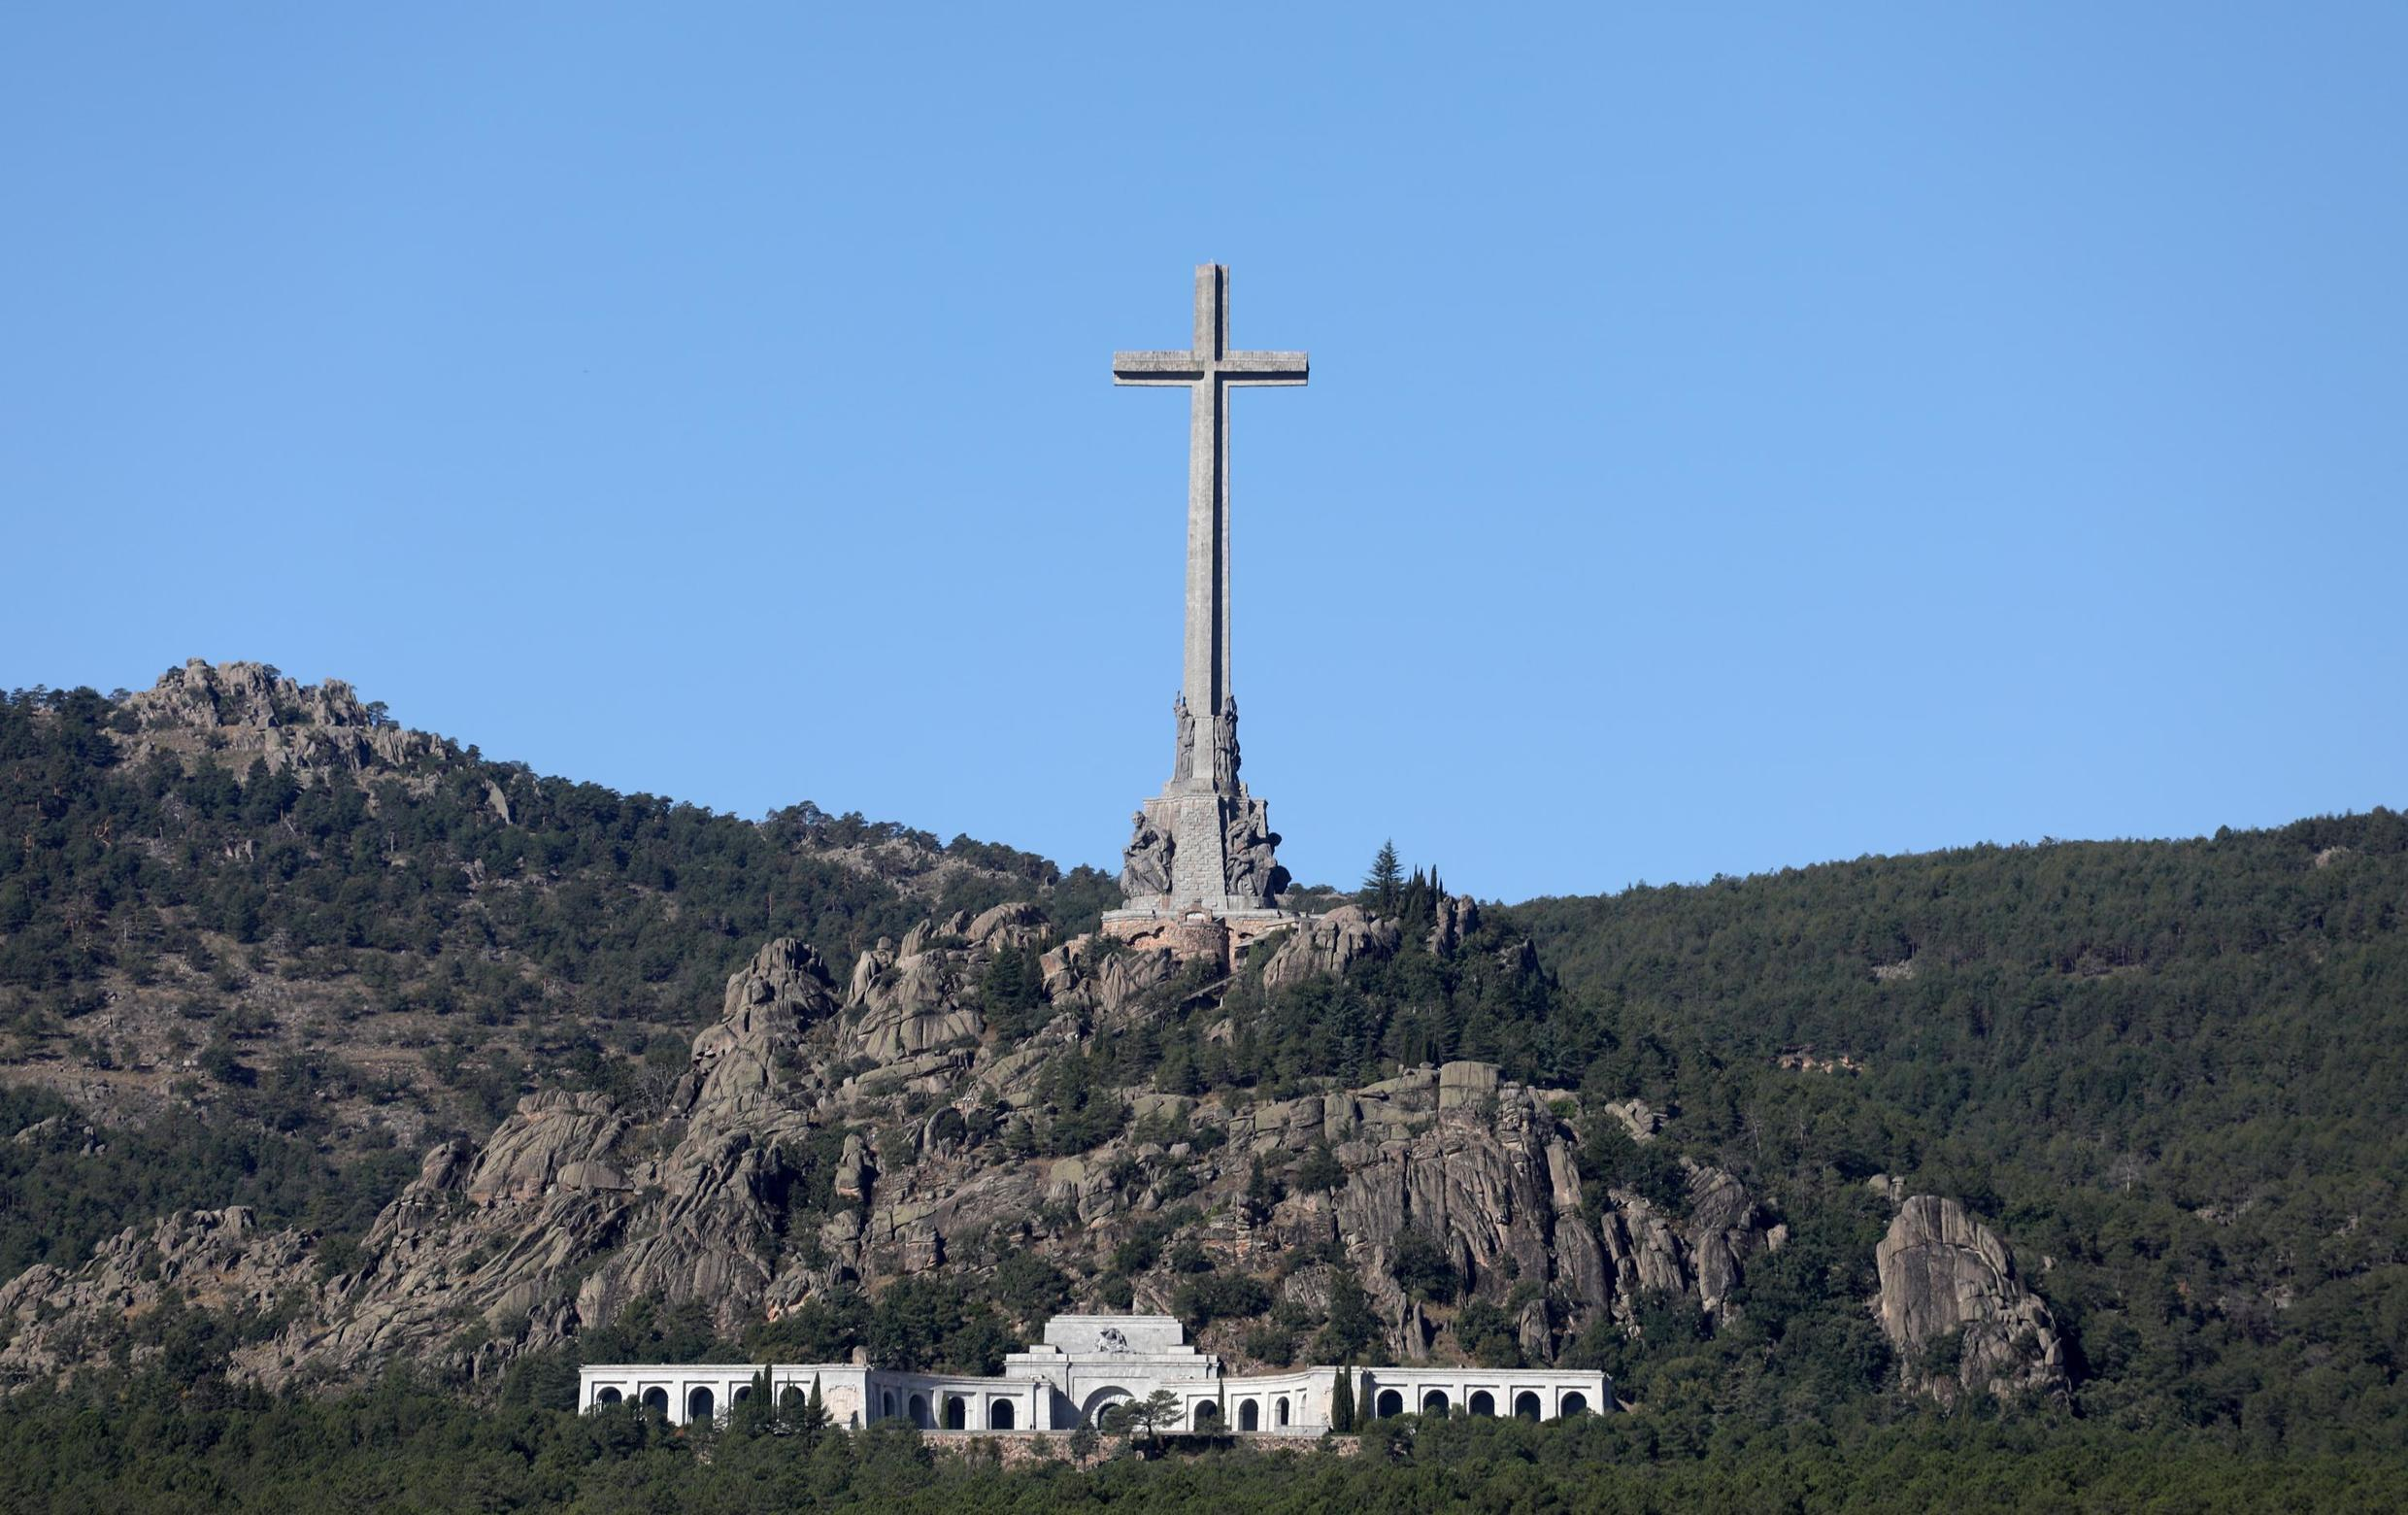 A general view of the Valle de los Caidos (The Valley of the Fallen), a mausoleum in San Lorenzo de El Escorial, Spain, where the late Spanish dictator Francisco Franco is buried, September 24, 2019.